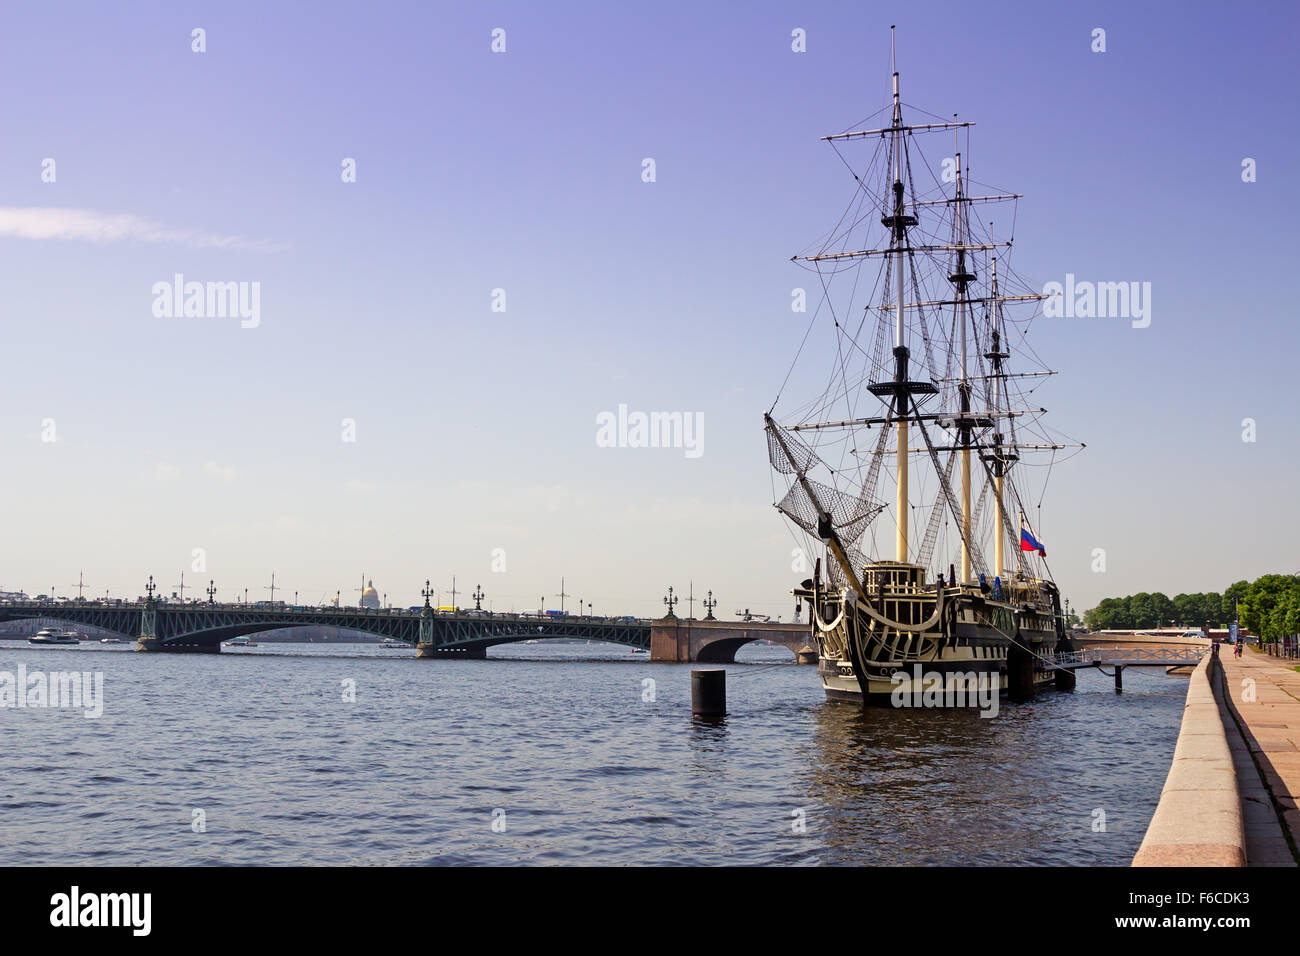 Saint Petersburg, Russia - June 06, 2014: The model of a sailing ship on the Neva river - Stock Image